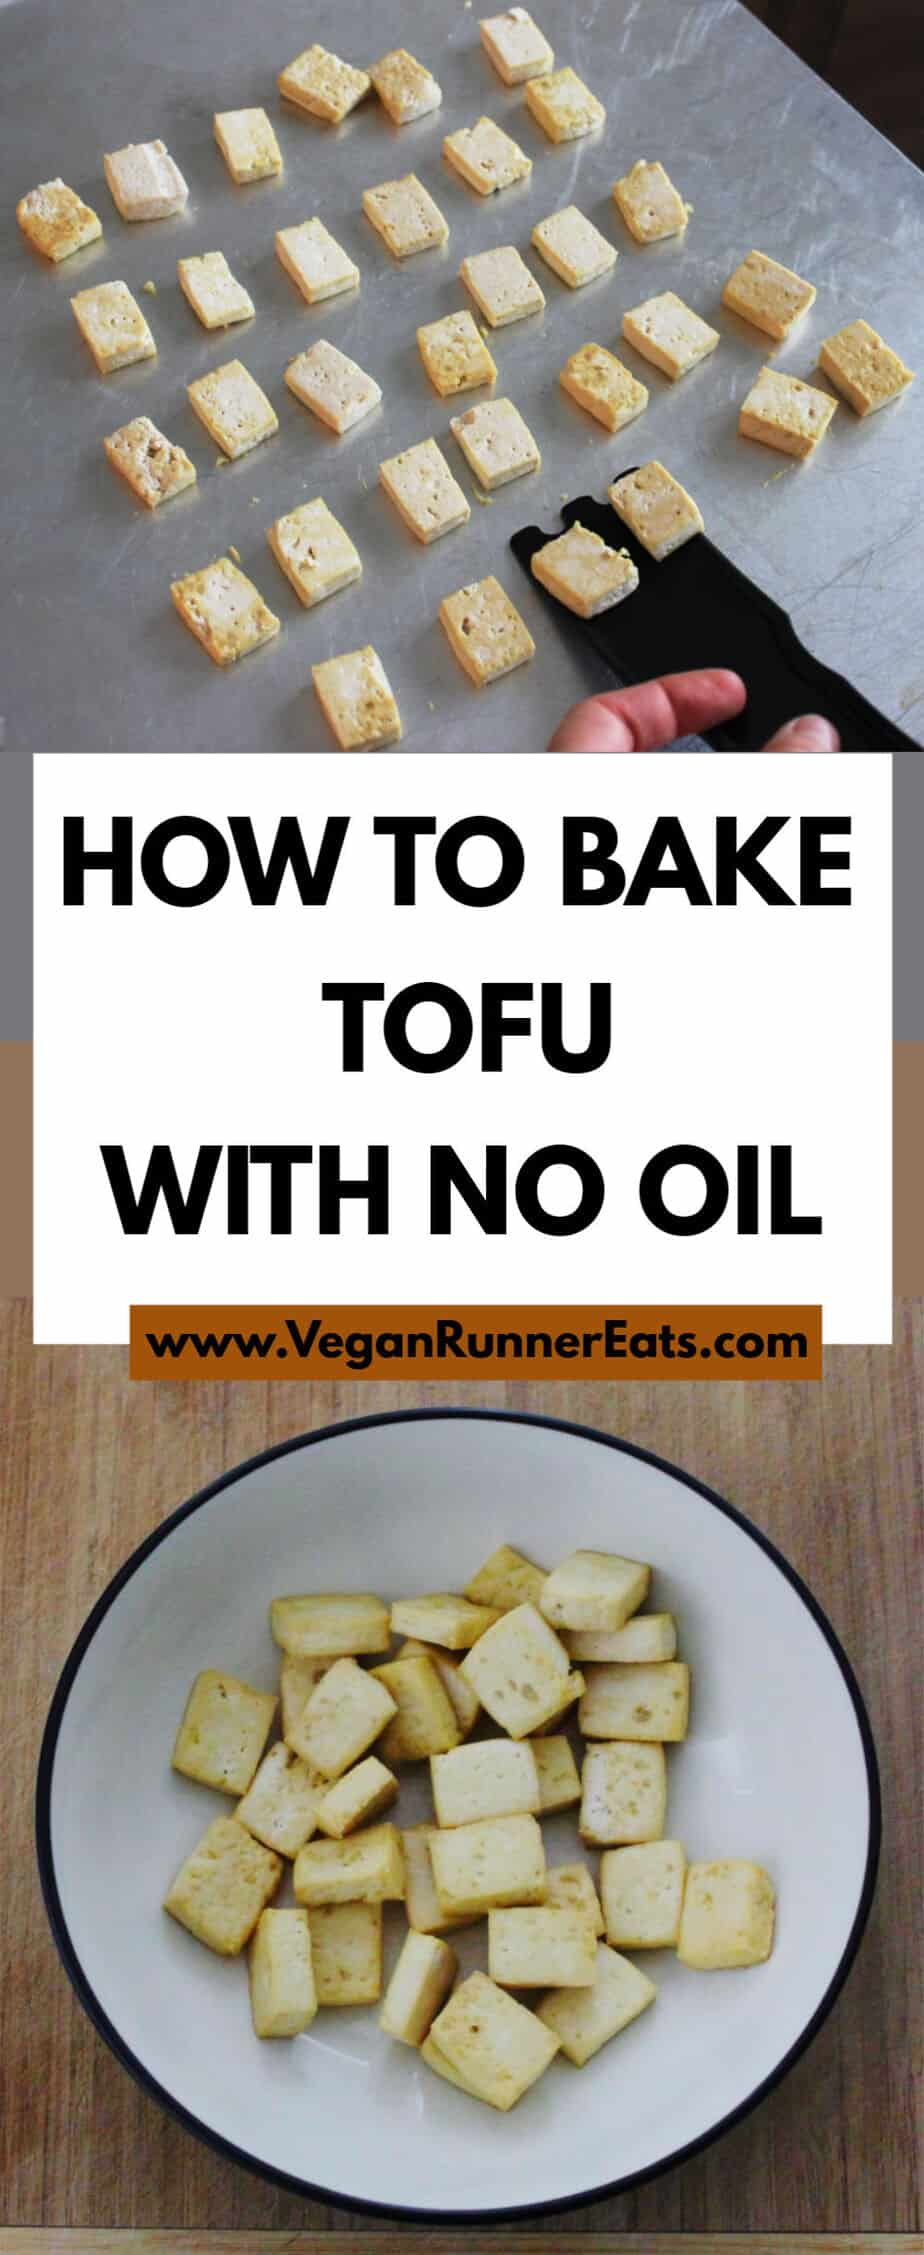 How to make crispy baked tofu with no oil: a basic method for baking oil-free tofu for use in plant-based stir-fries, soups, salads, etc. | Vegan Runner Eats